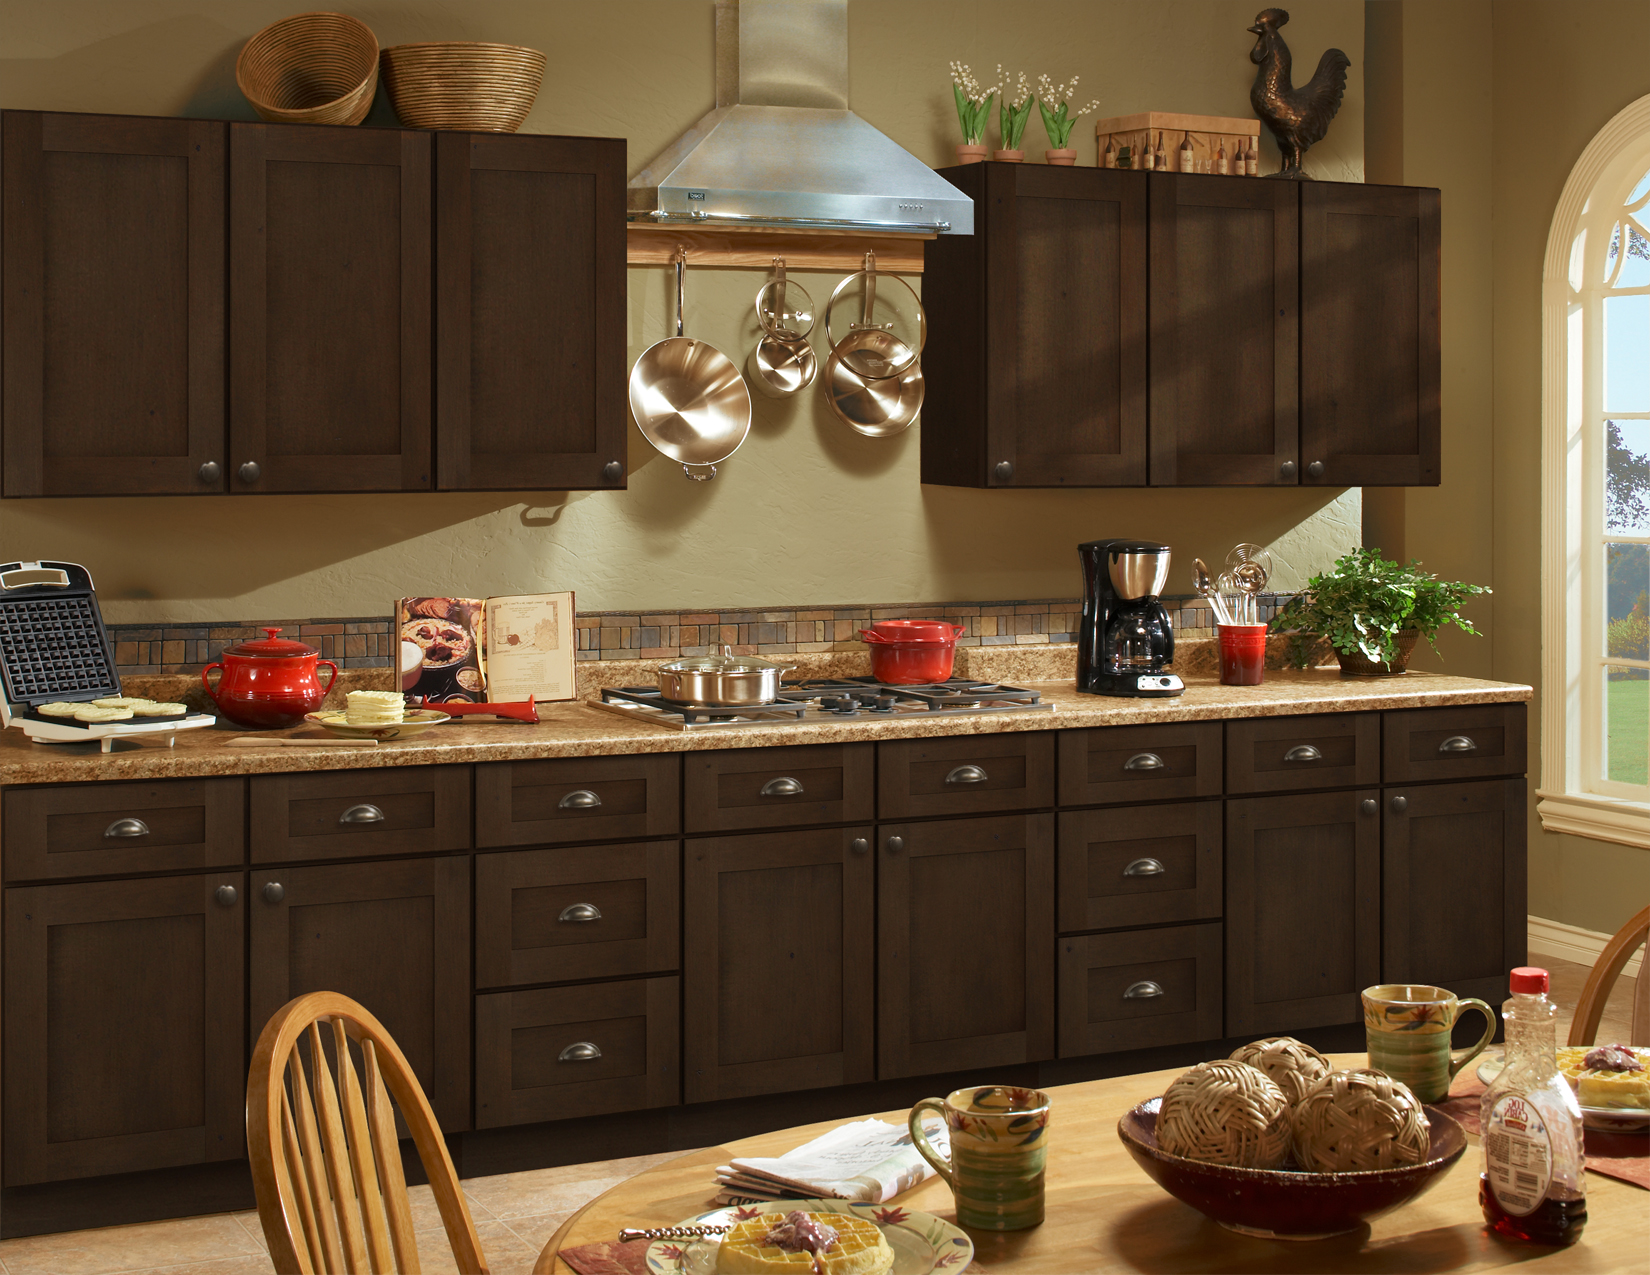 Sunny Wood Introduces The Branden Kitchen Collection Kbis